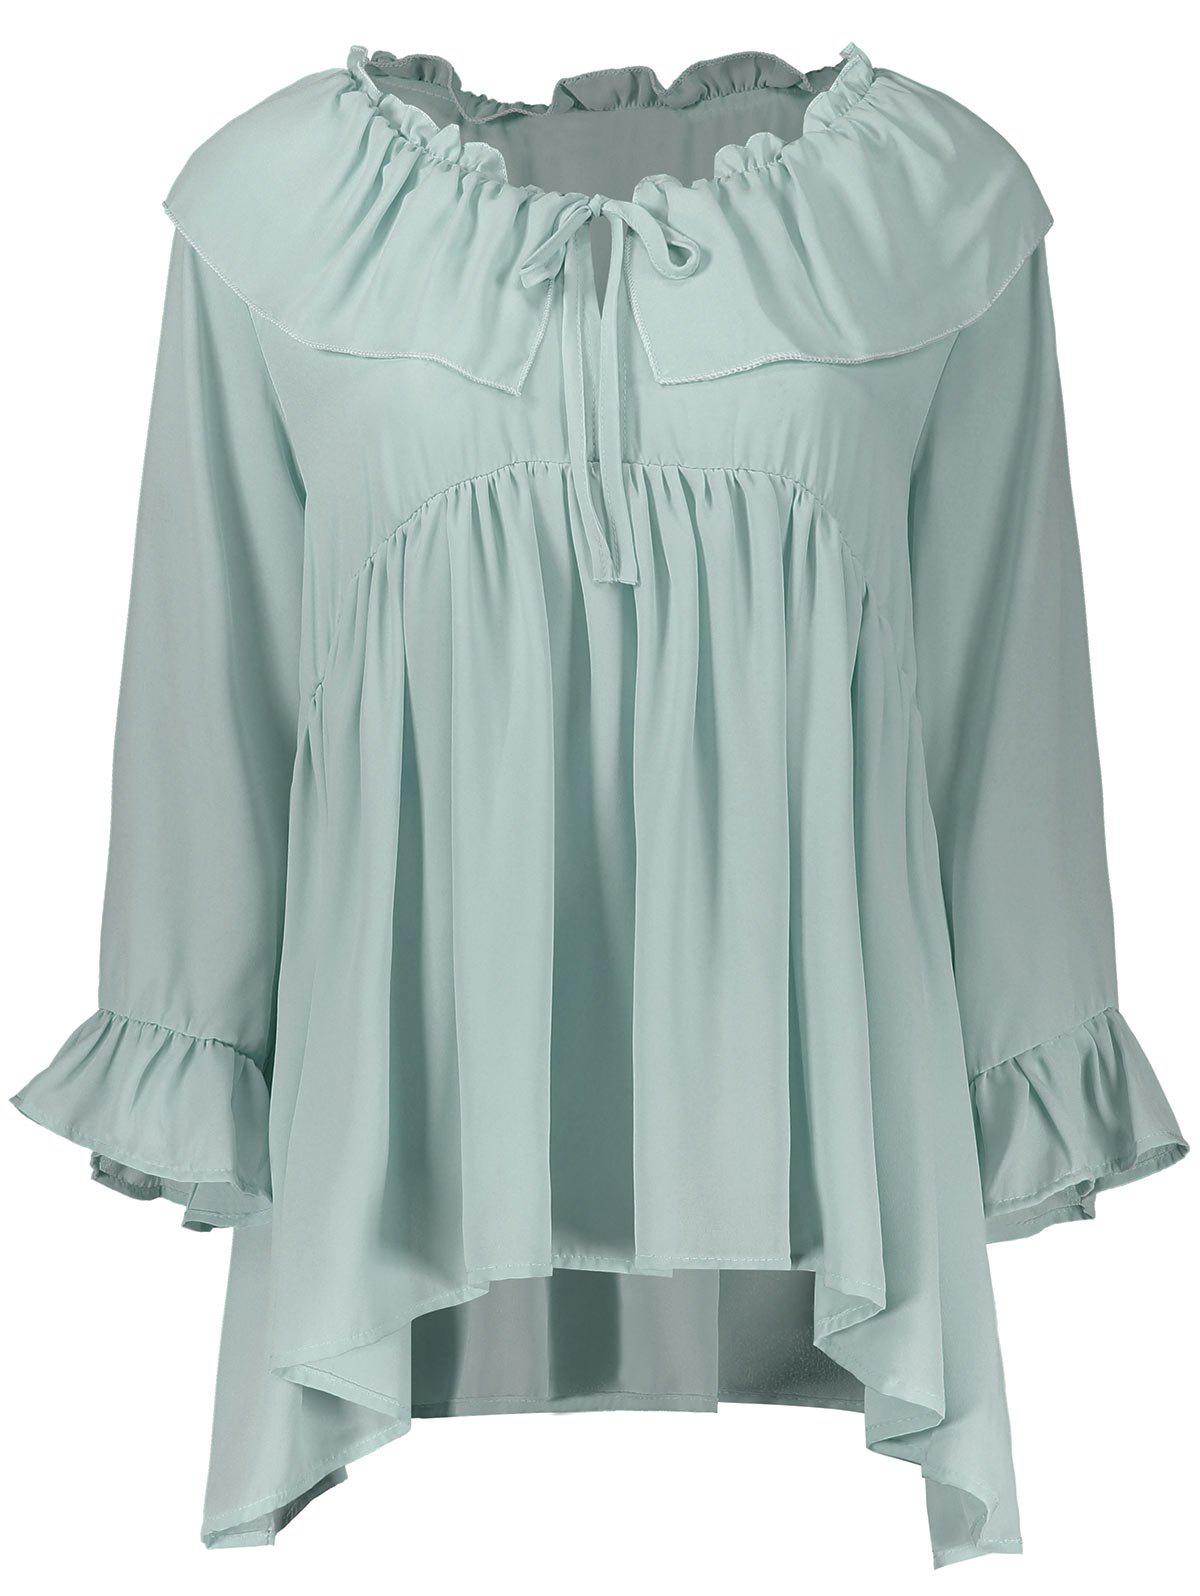 Ruffle Chiffon Plus Size Top - LIGHT GREEN 4XL